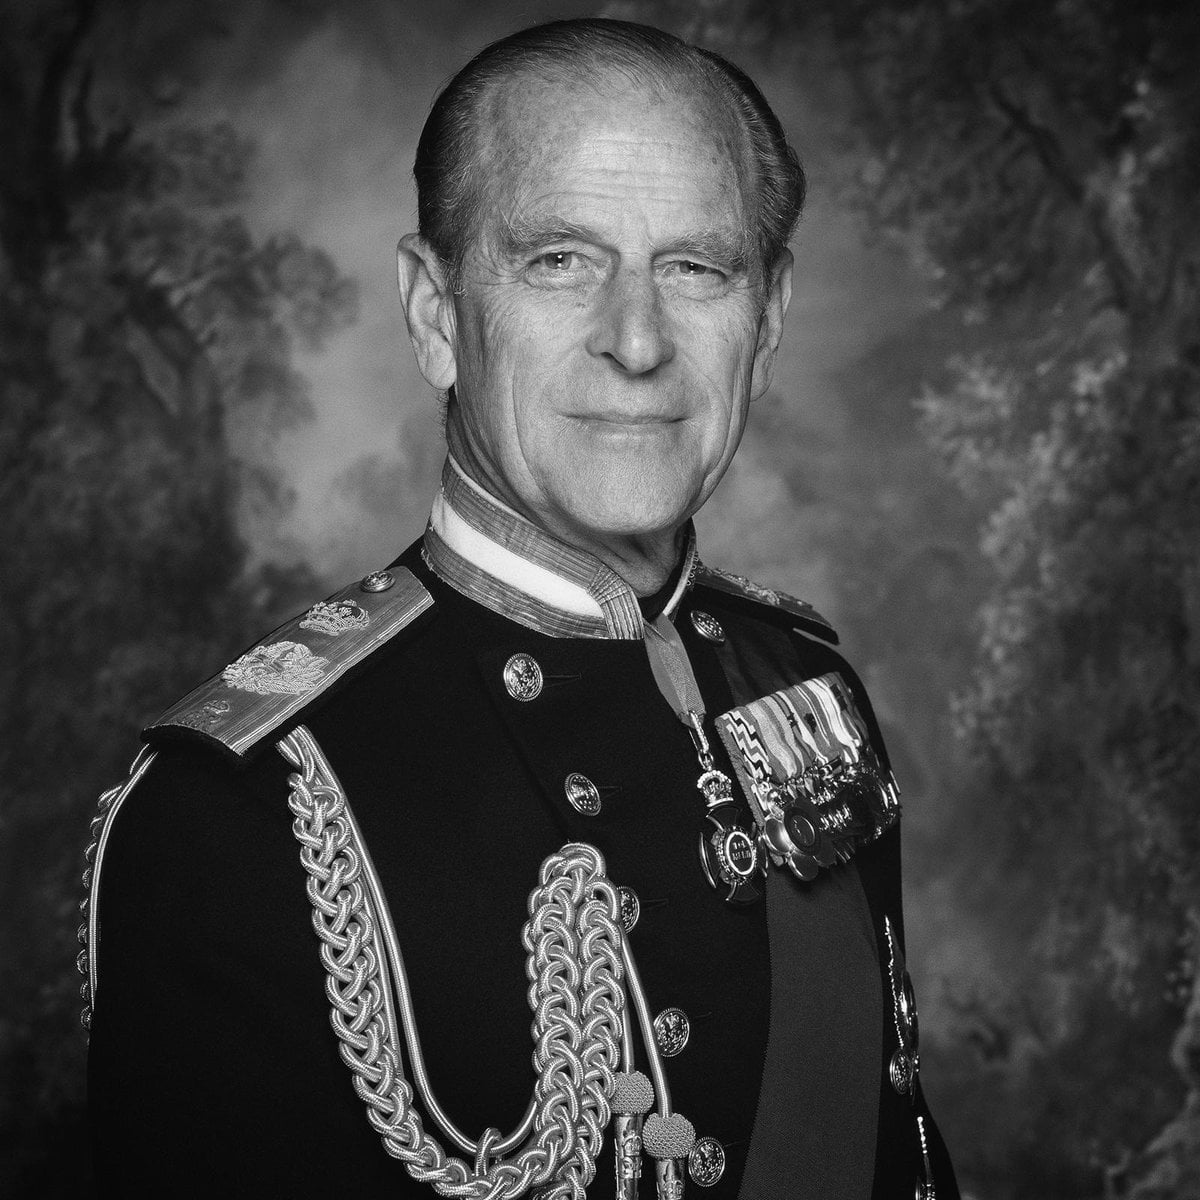 HRH Prince Phillip, The Duke of Edinburgh